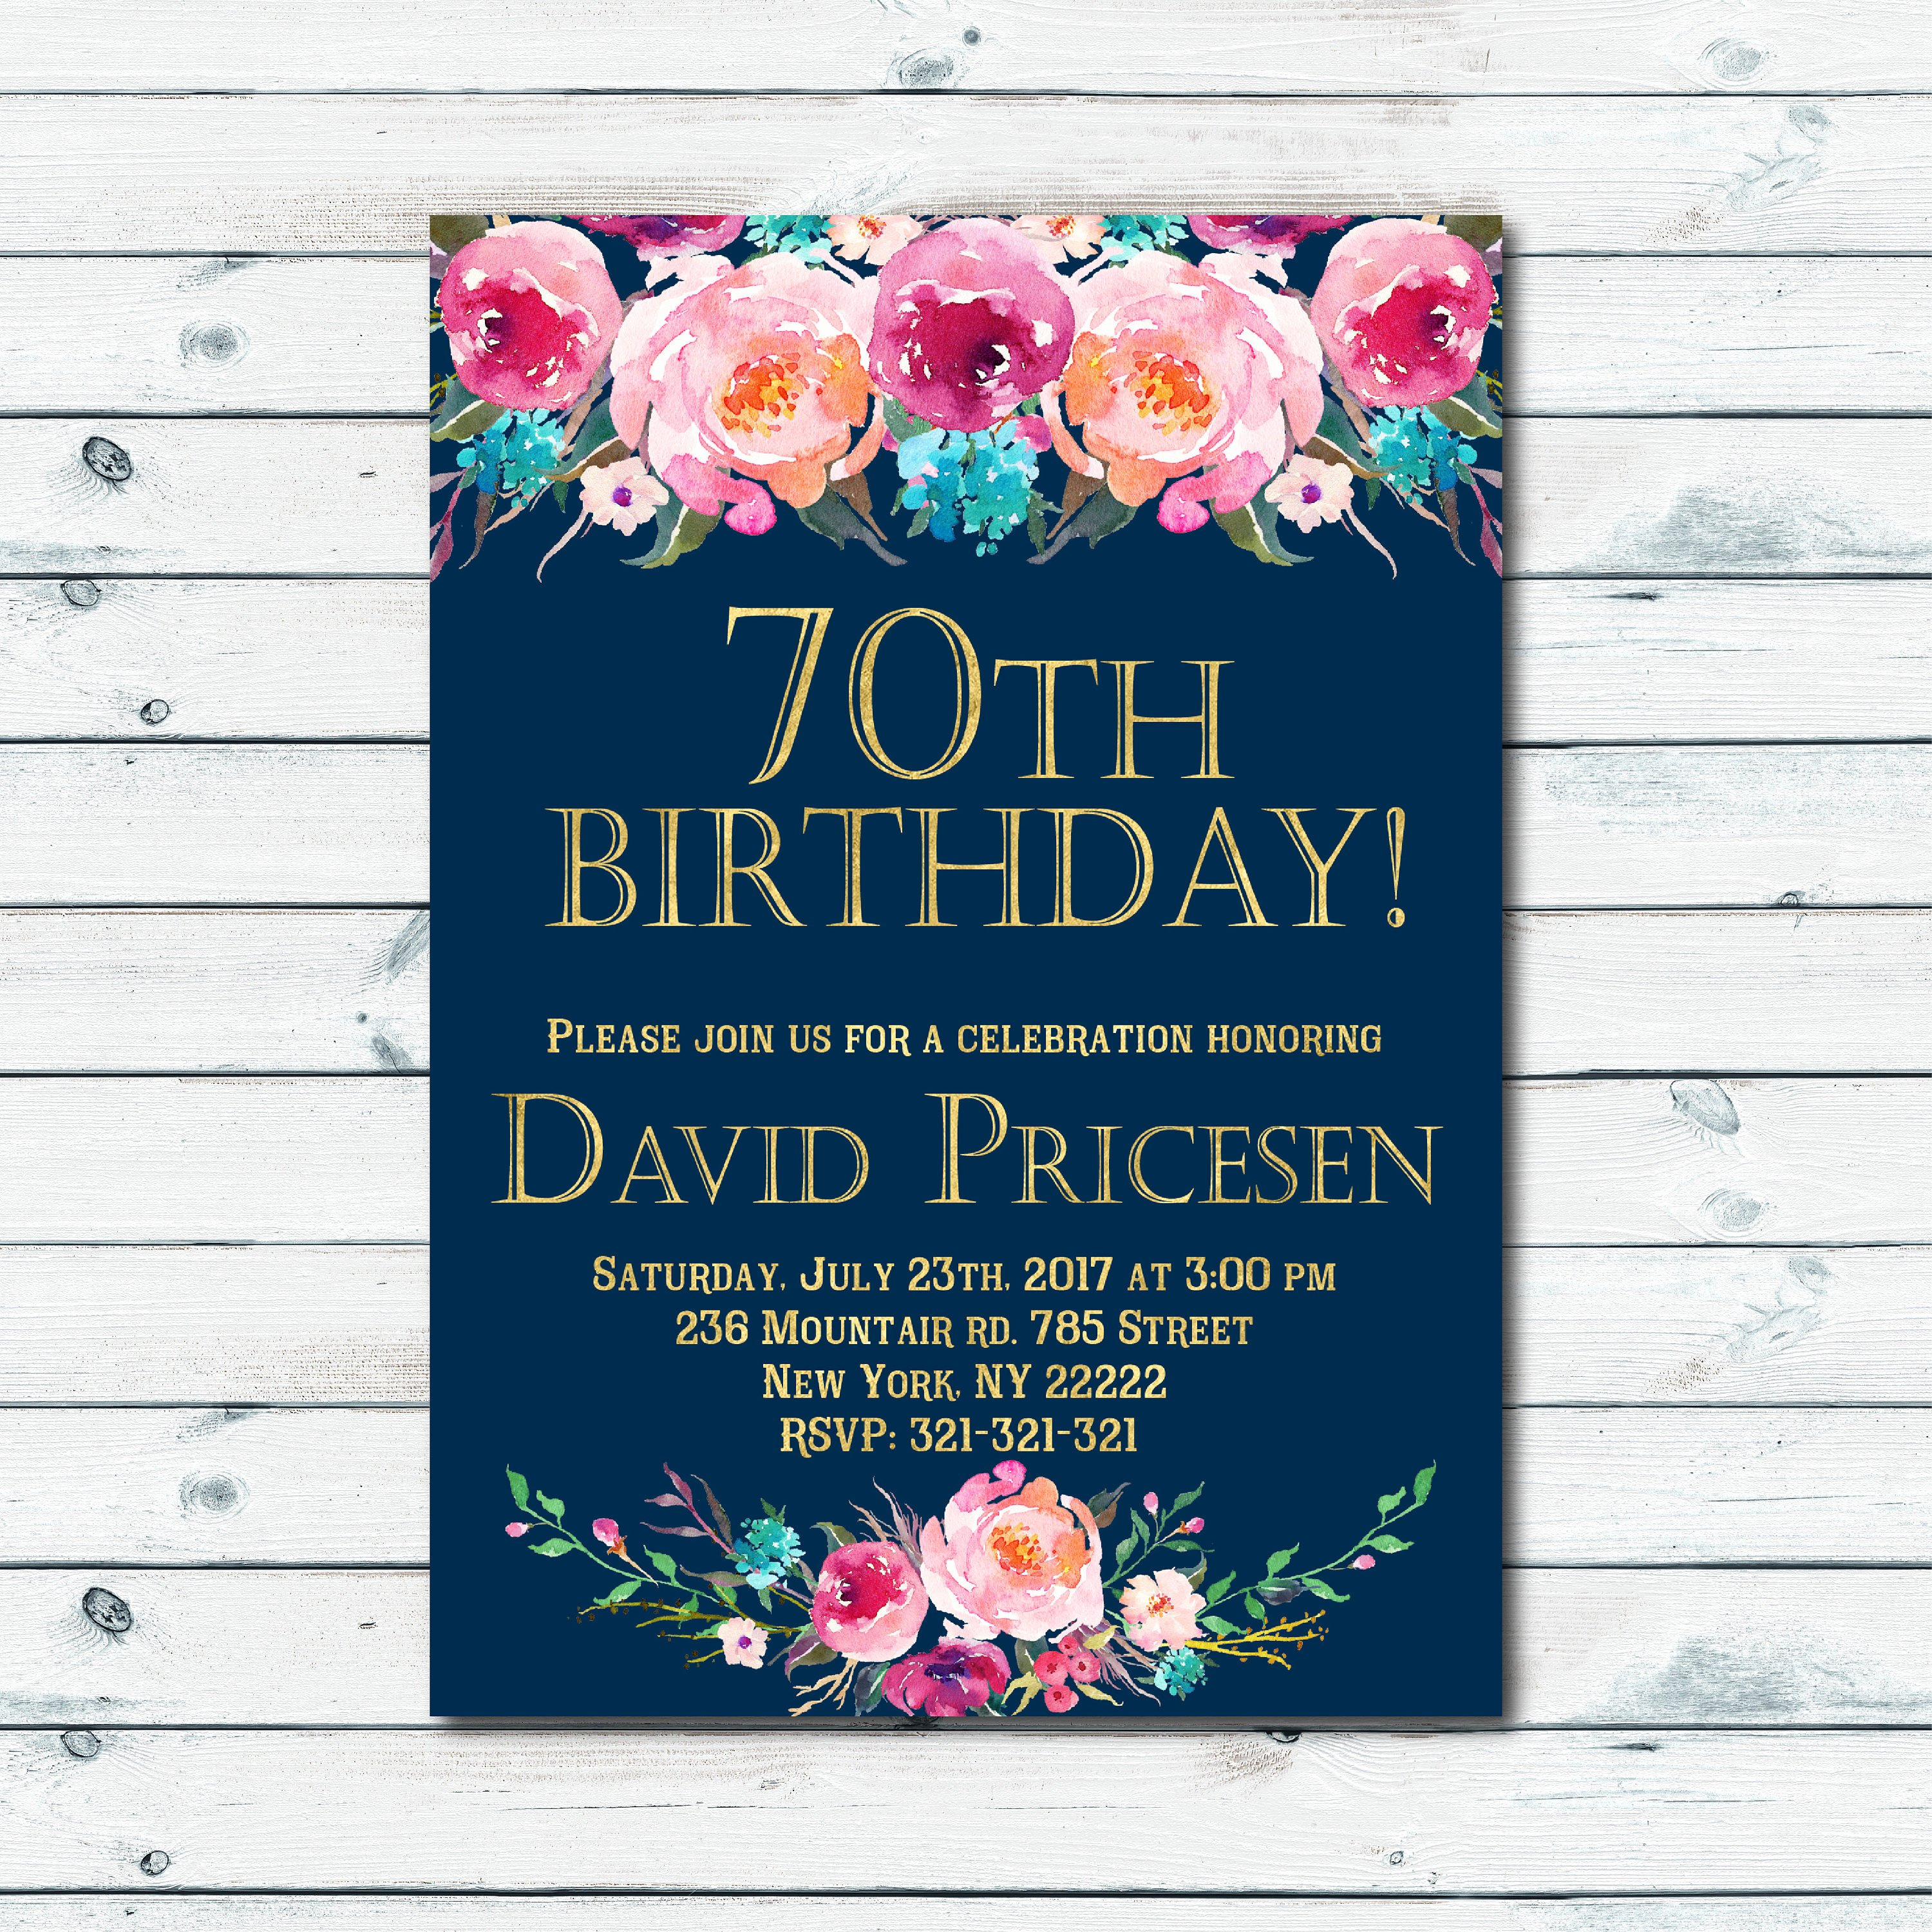 60th Birthday Invitation Template Best Of Surprise 60th Birthday Party Invitations Template Queen